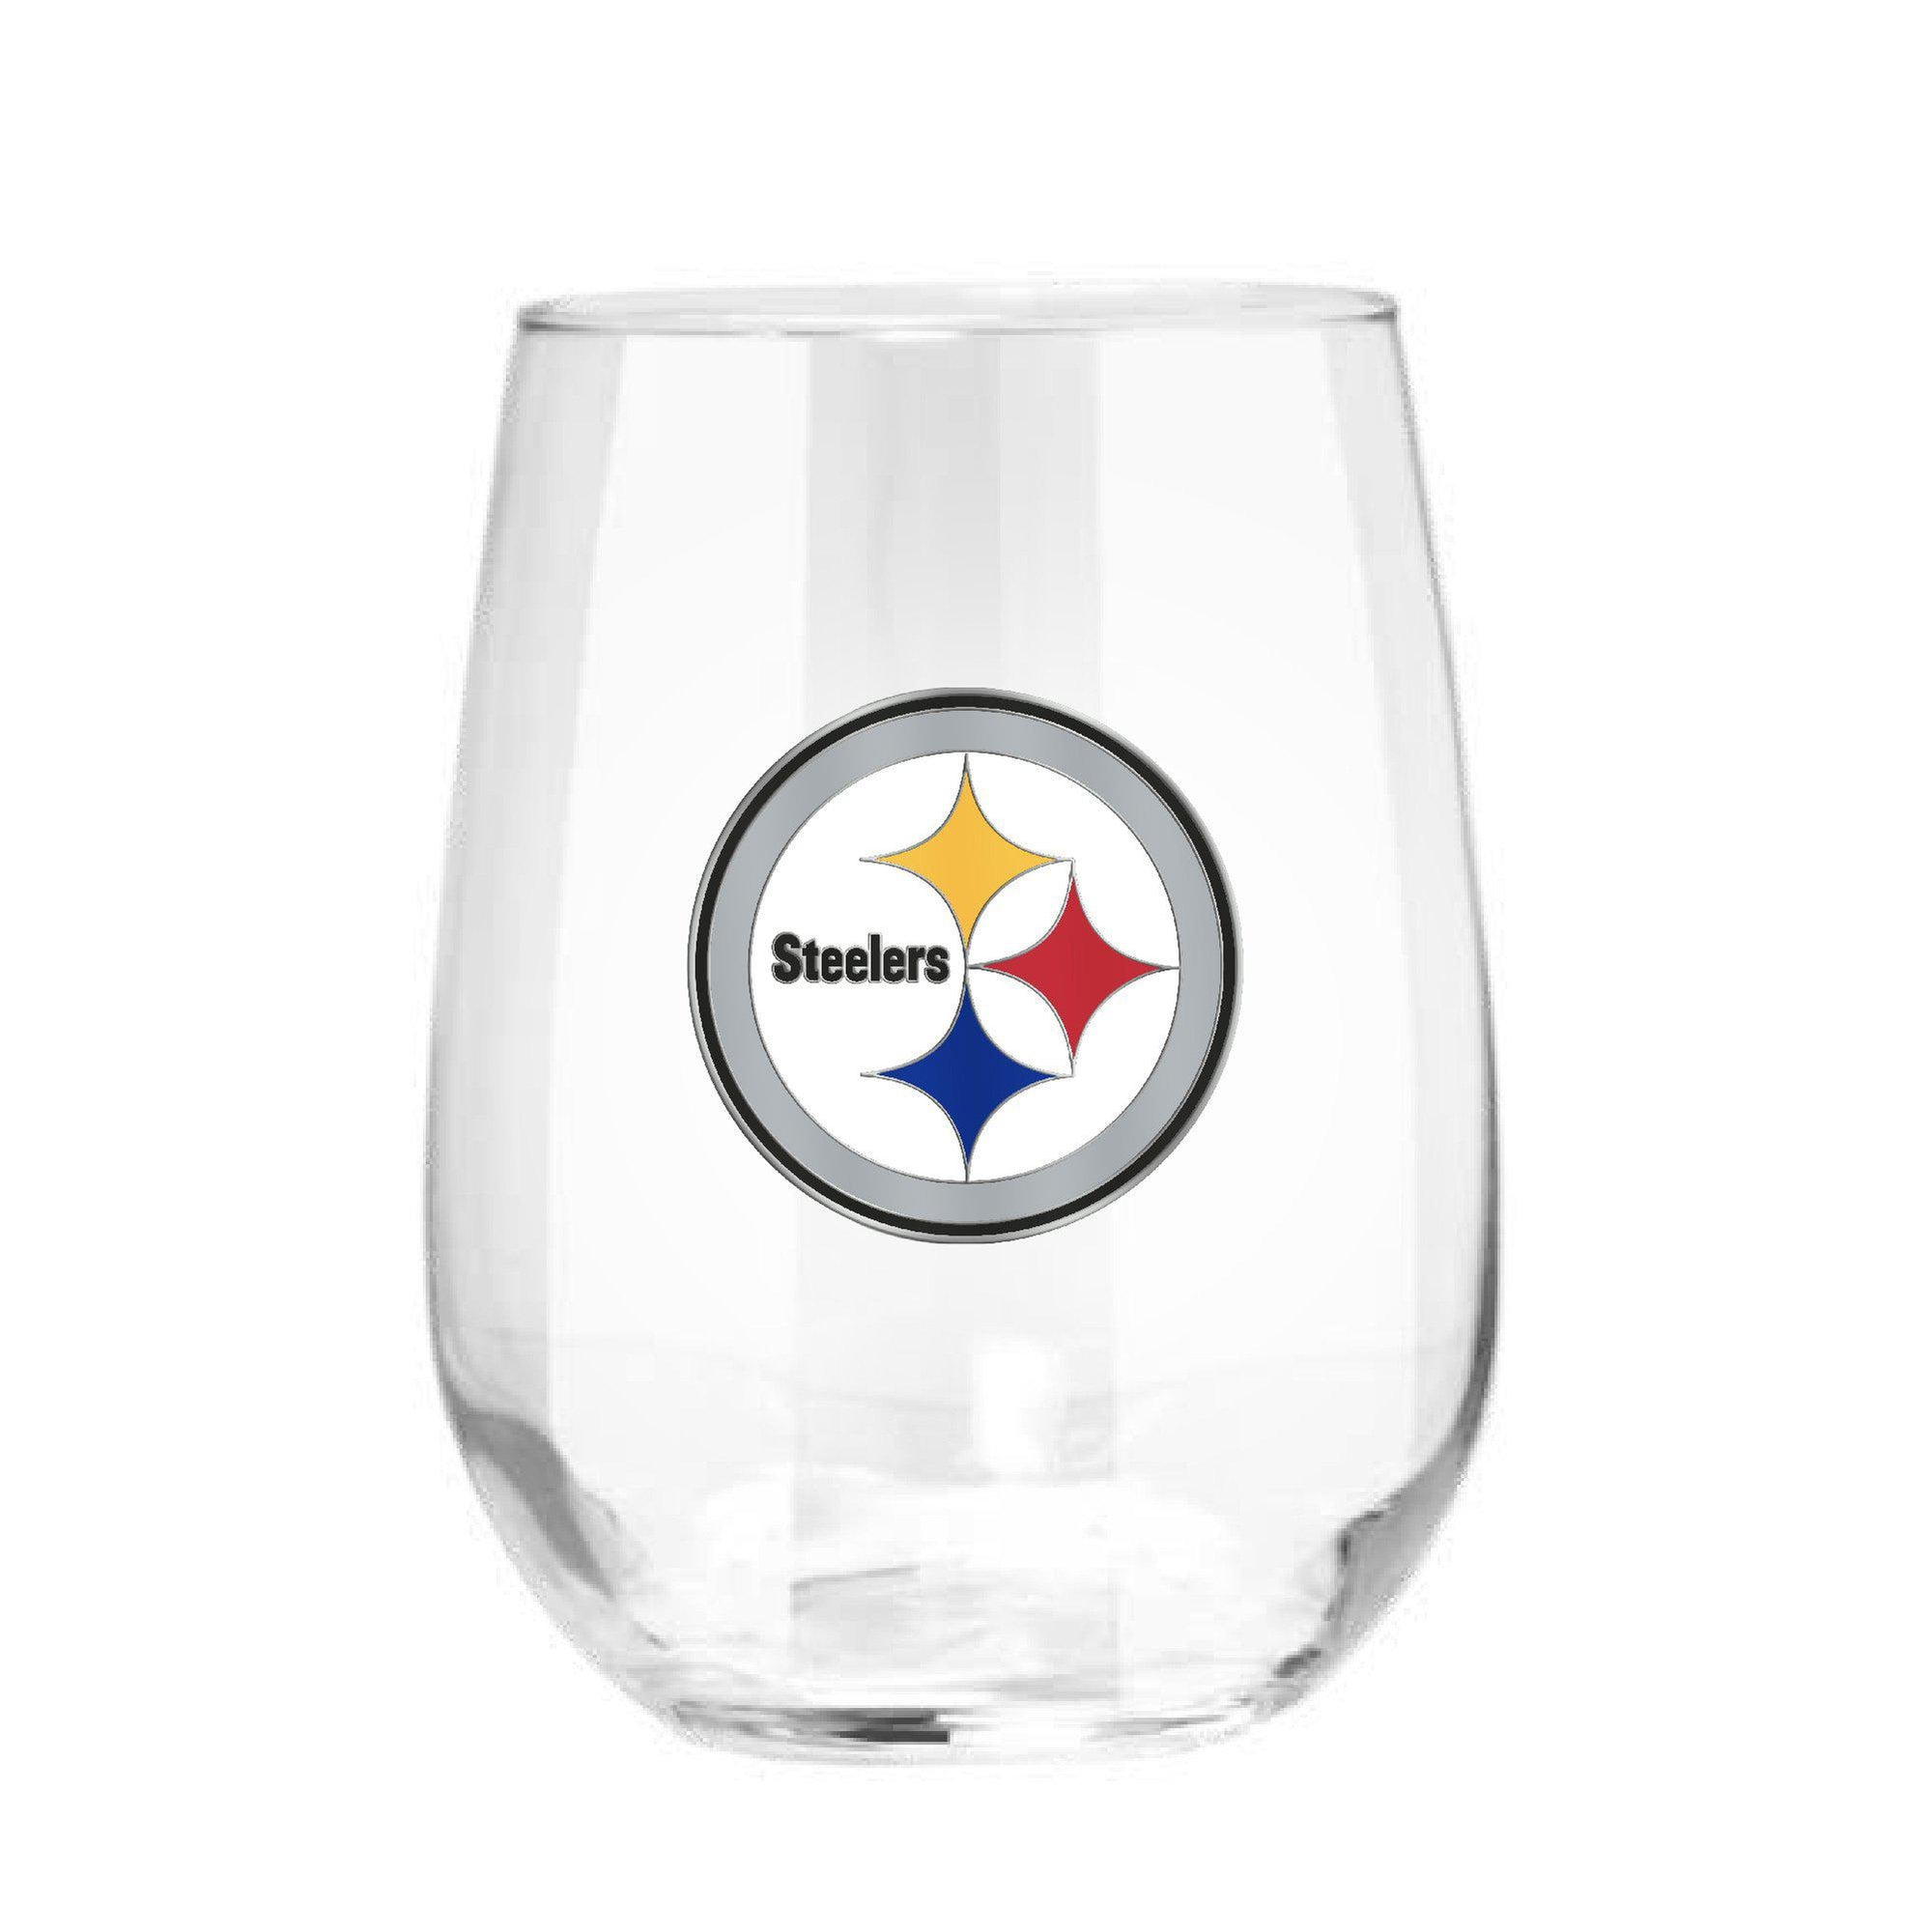 Pittsburgh Steelers 15 oz. Stemless Wine Glass - (Set of 2)-Stemless Wine Glass-Great American Products-Top Notch Gift Shop